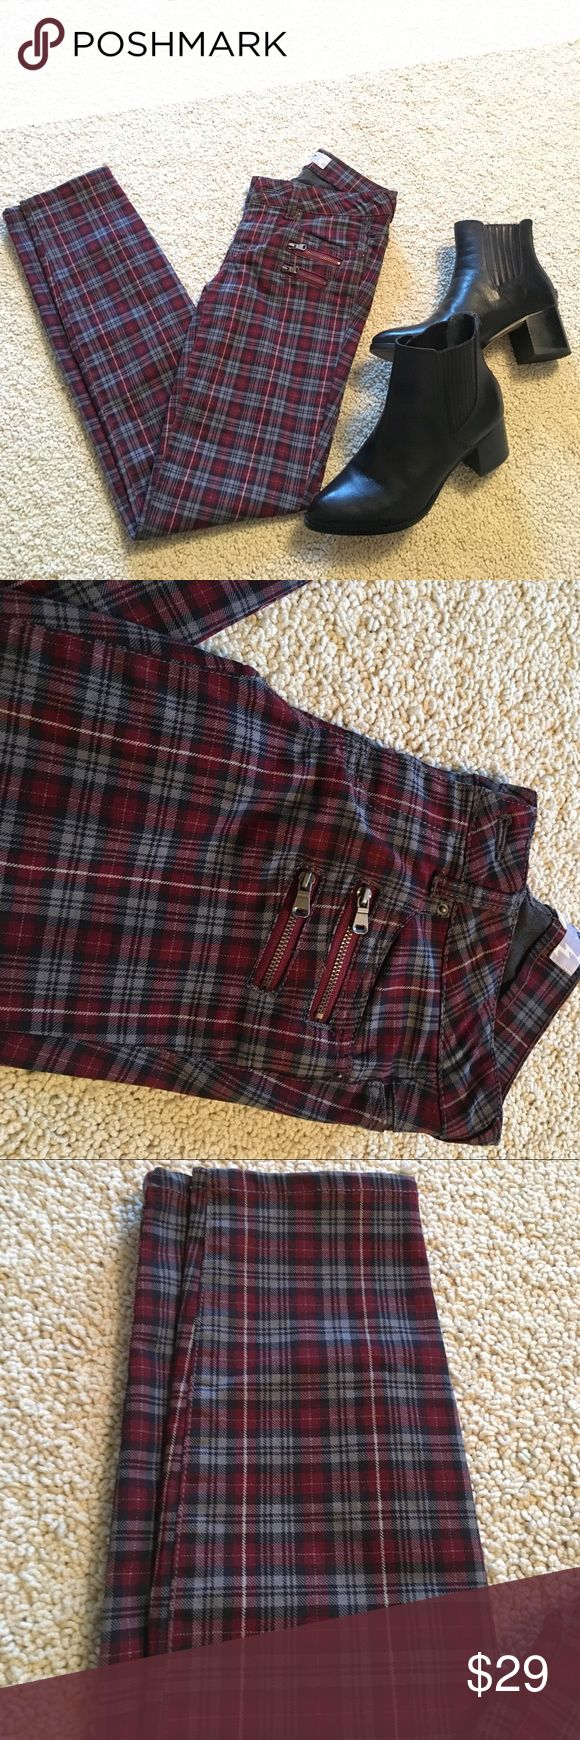 Plaid Skinny Pants Red/gray/black plaid skinny pants.   Zippered pocket design (not real pockets) but other two front pockets are real.  Juniors size 1 fits like women's 0-2. Jolt brand purchased at Nordstrom.  Boots in photo are not for sale, just for outfit inspiration  Jolt Pants Skinny